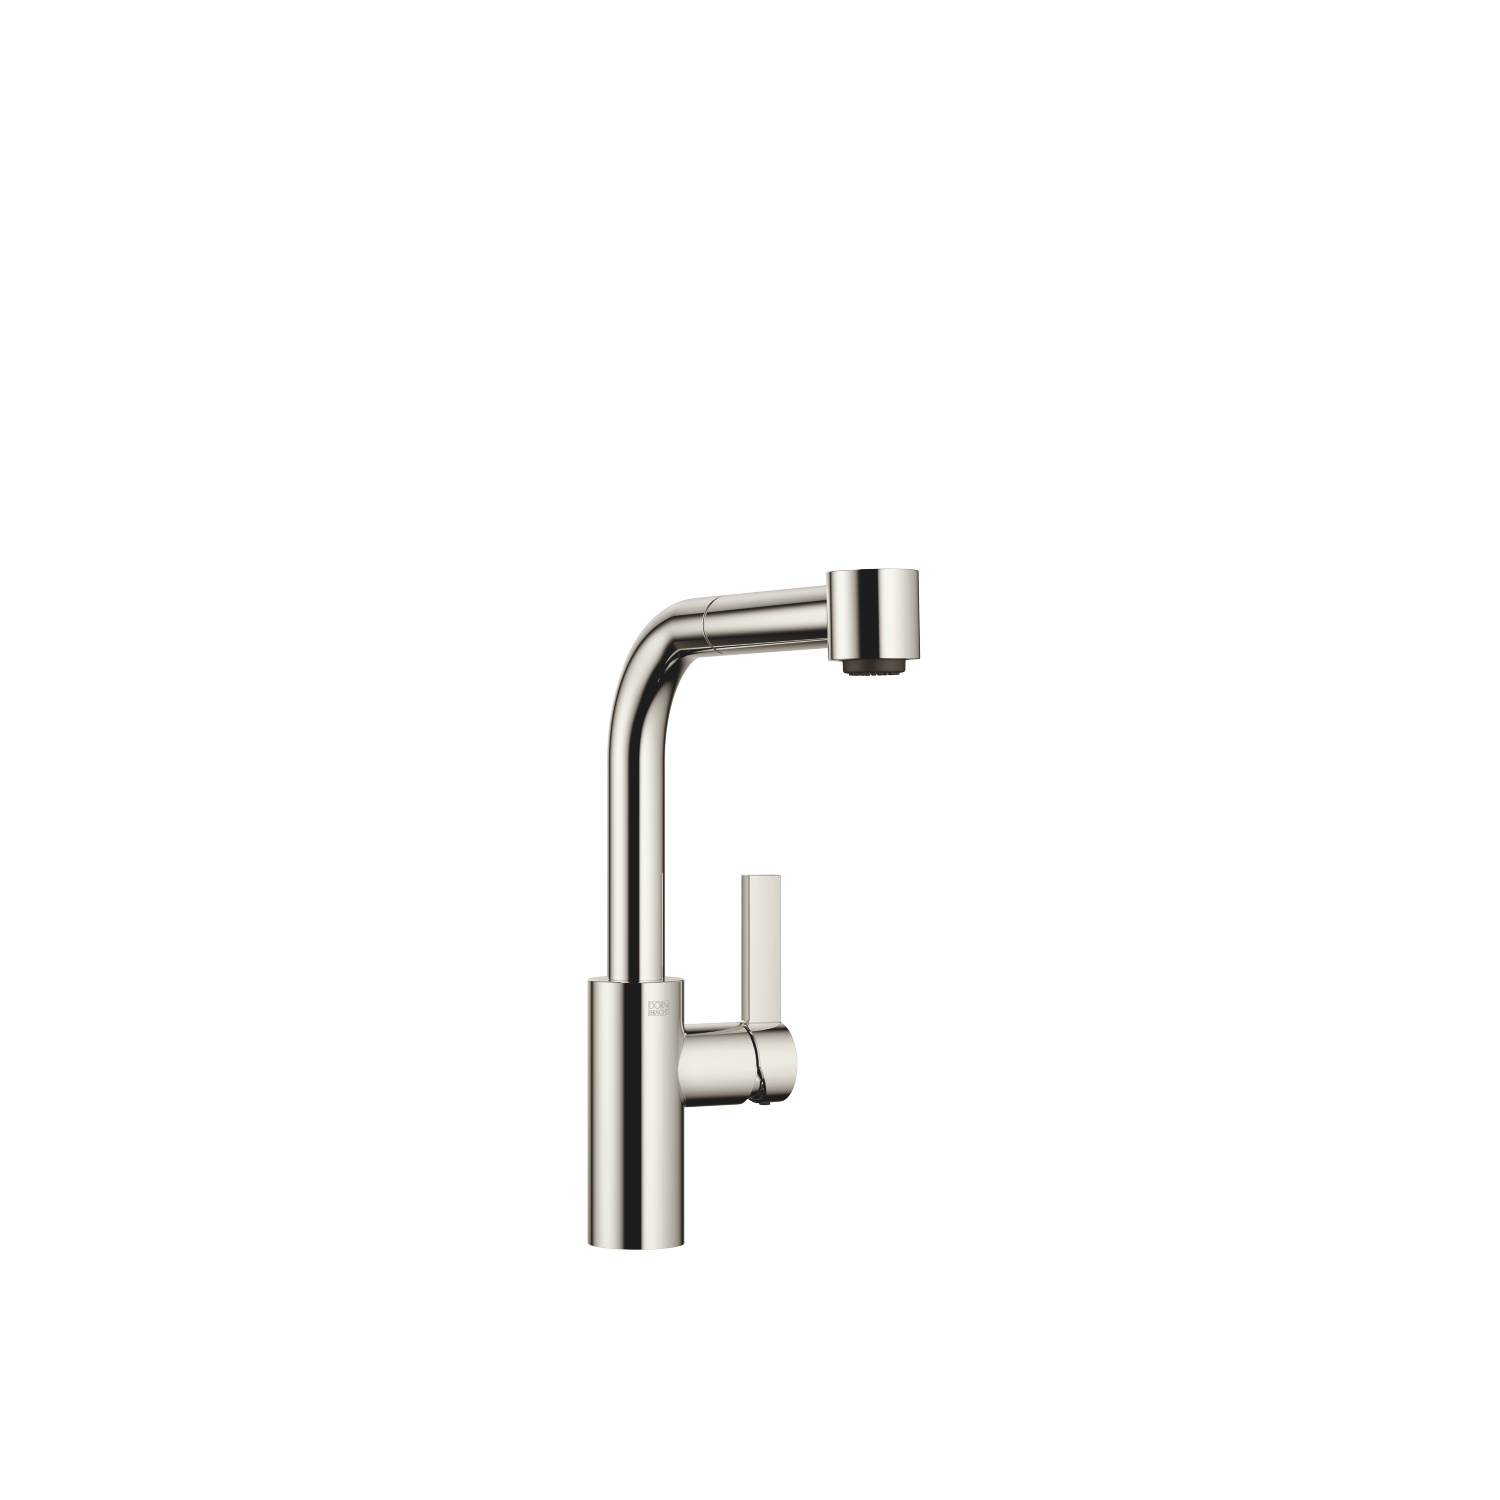 Single-lever mixer Pull-out with spray function - platinum